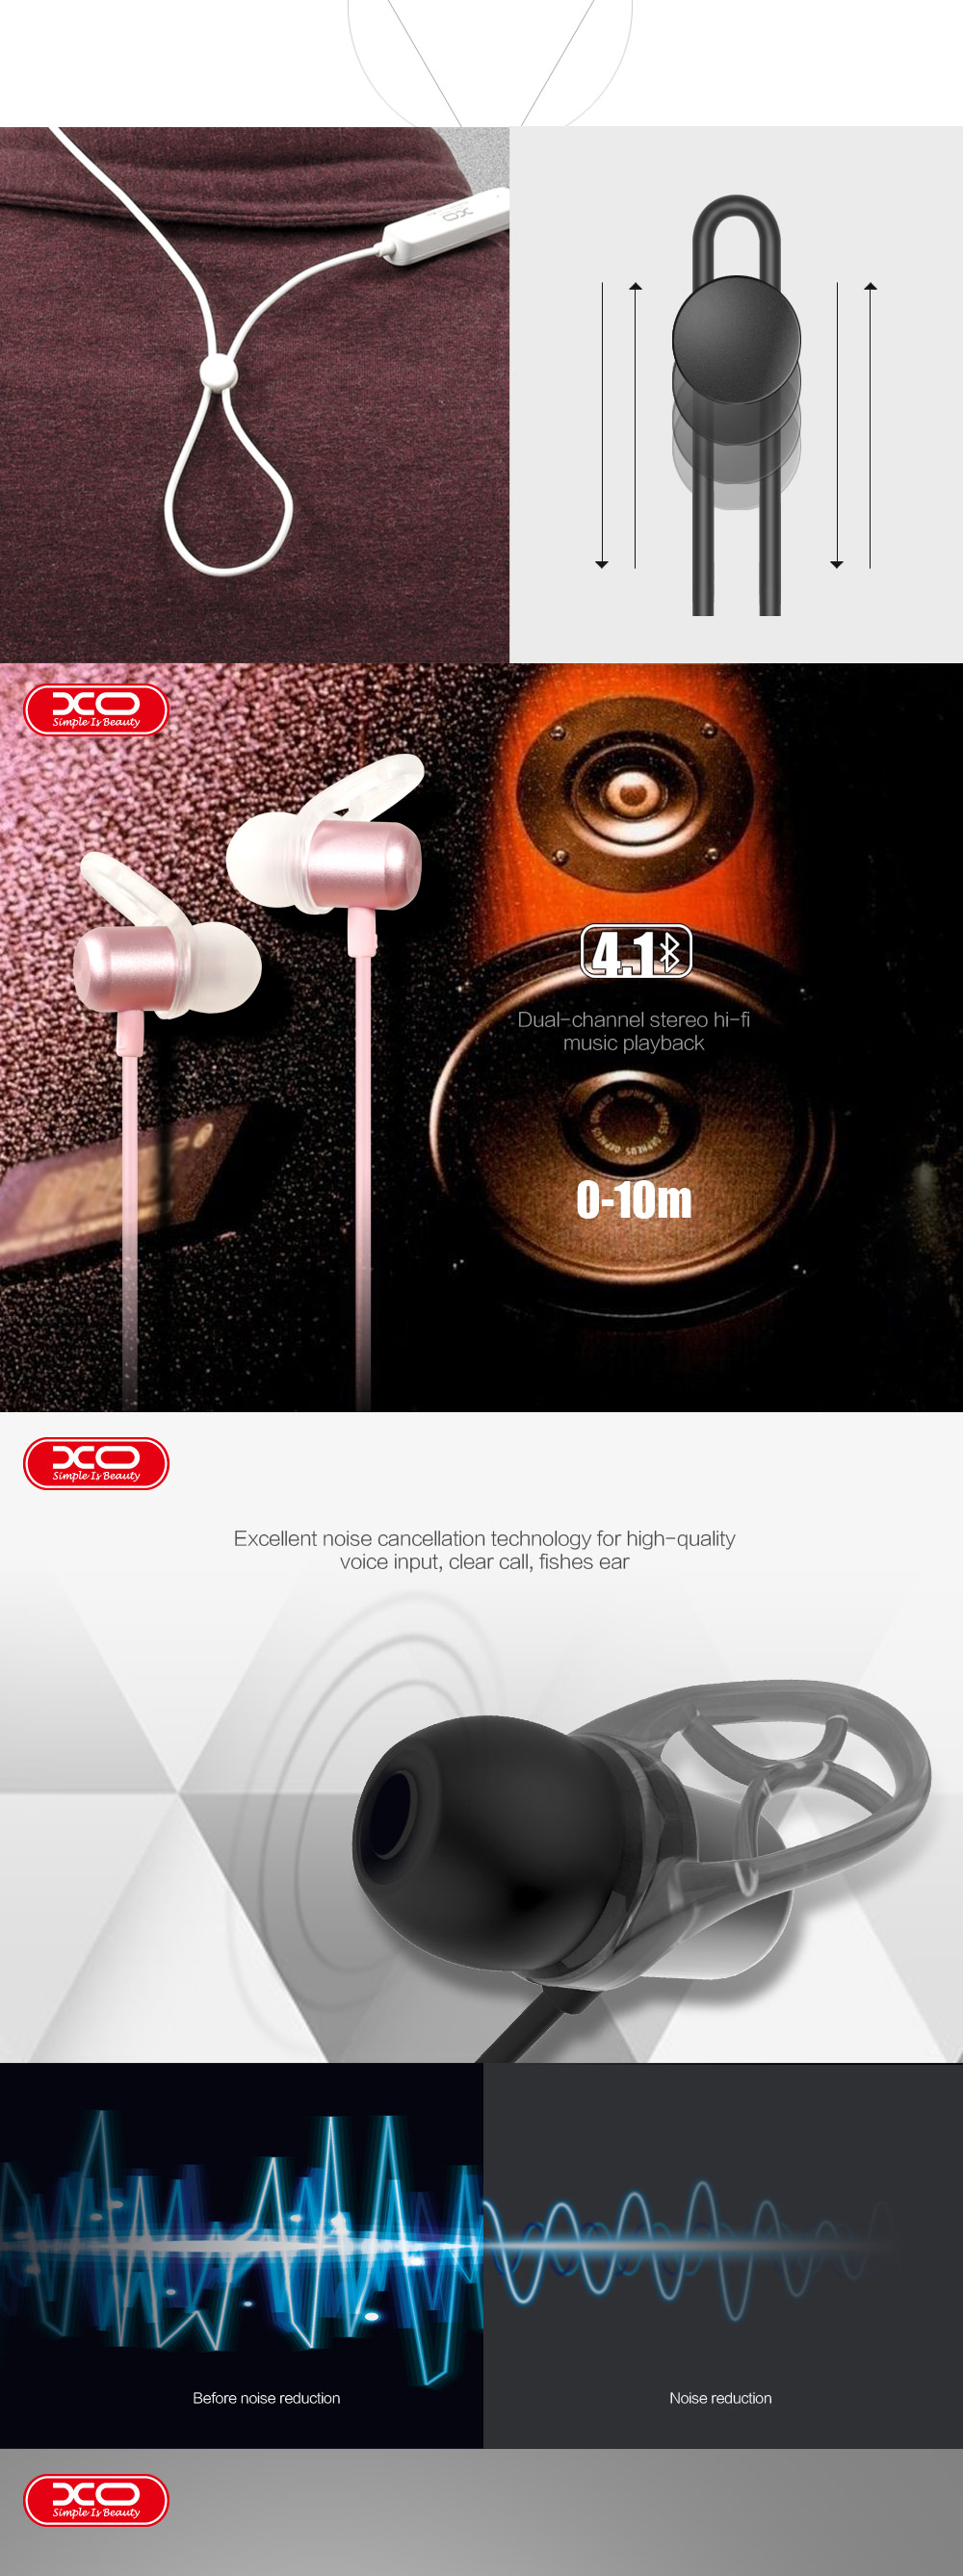 Bluetooth In-Ear XO BS2 Sports Magnetic Bluetooth Headset 4.1 version with Microphone Sweatproof Stereo tereo Bluetooth Headset